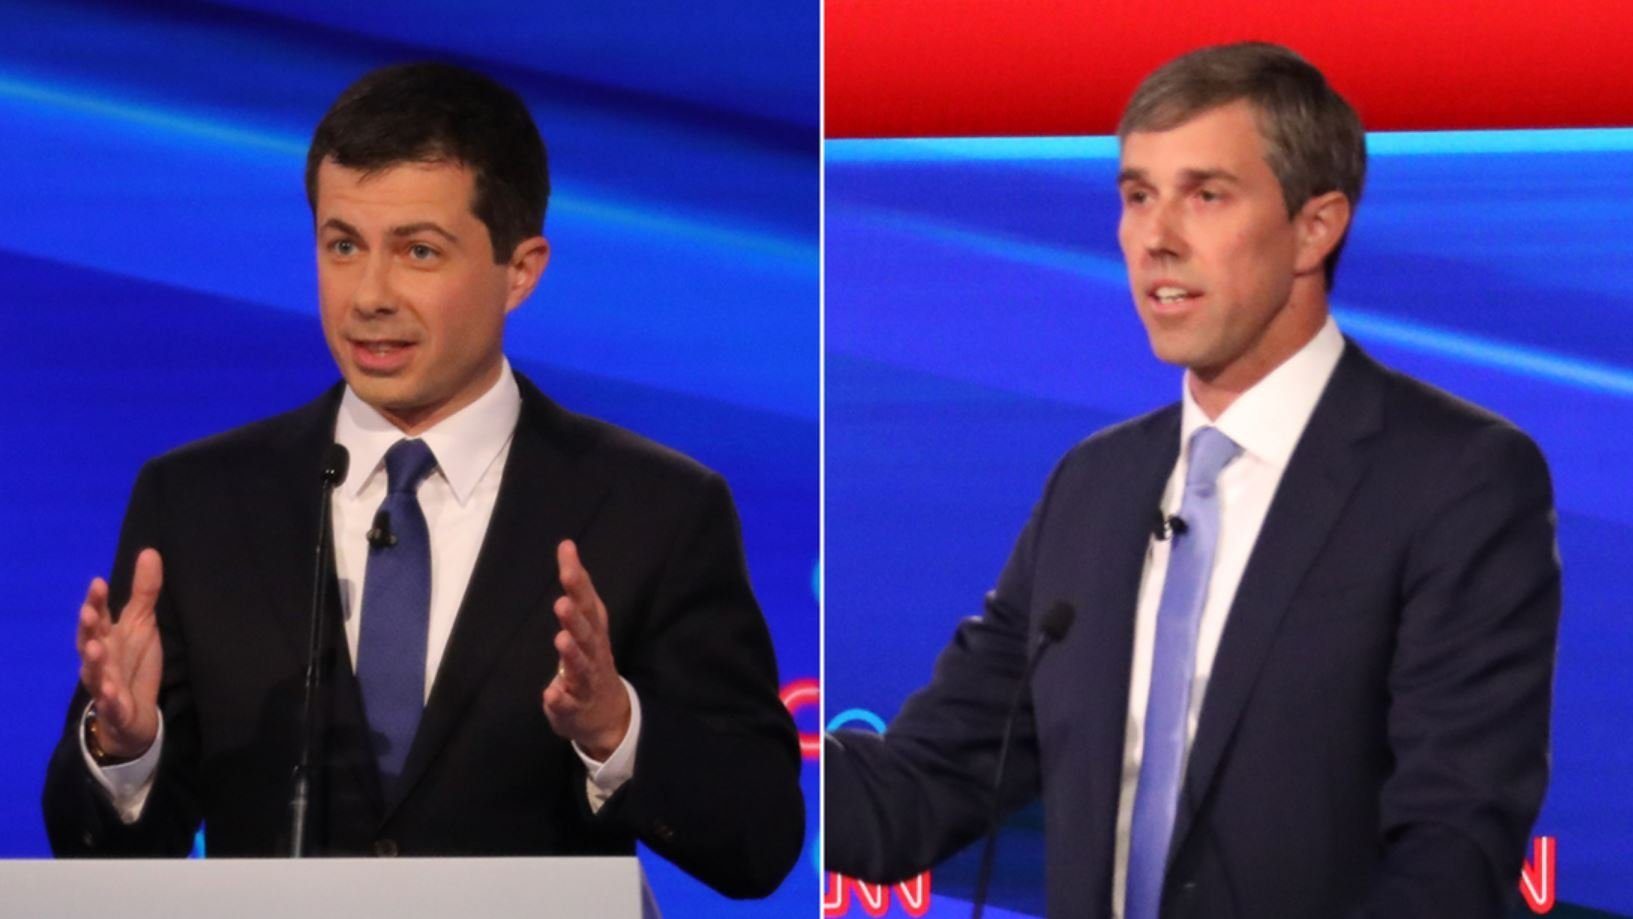 Buttigieg to O'Rourke: 'I don't need lessons from you on courage — political or personal'